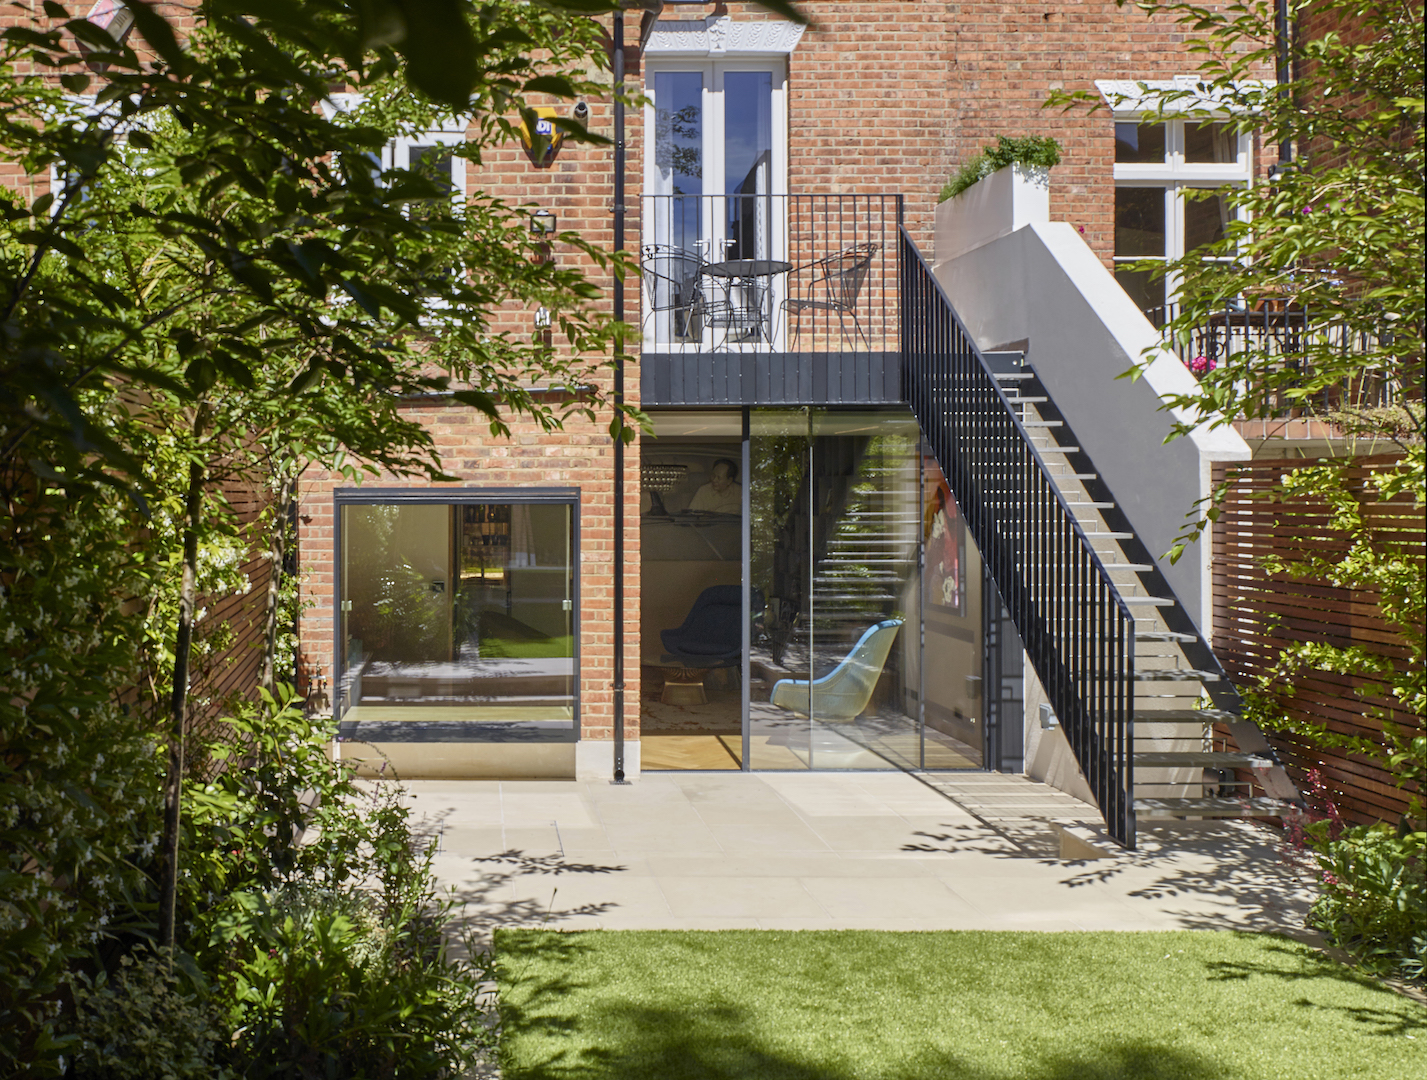 full renovation townhouse in Hampstead including Boffi kitchen and bespoke staircase by minimalist London architect practice Thompson + Baroni architects